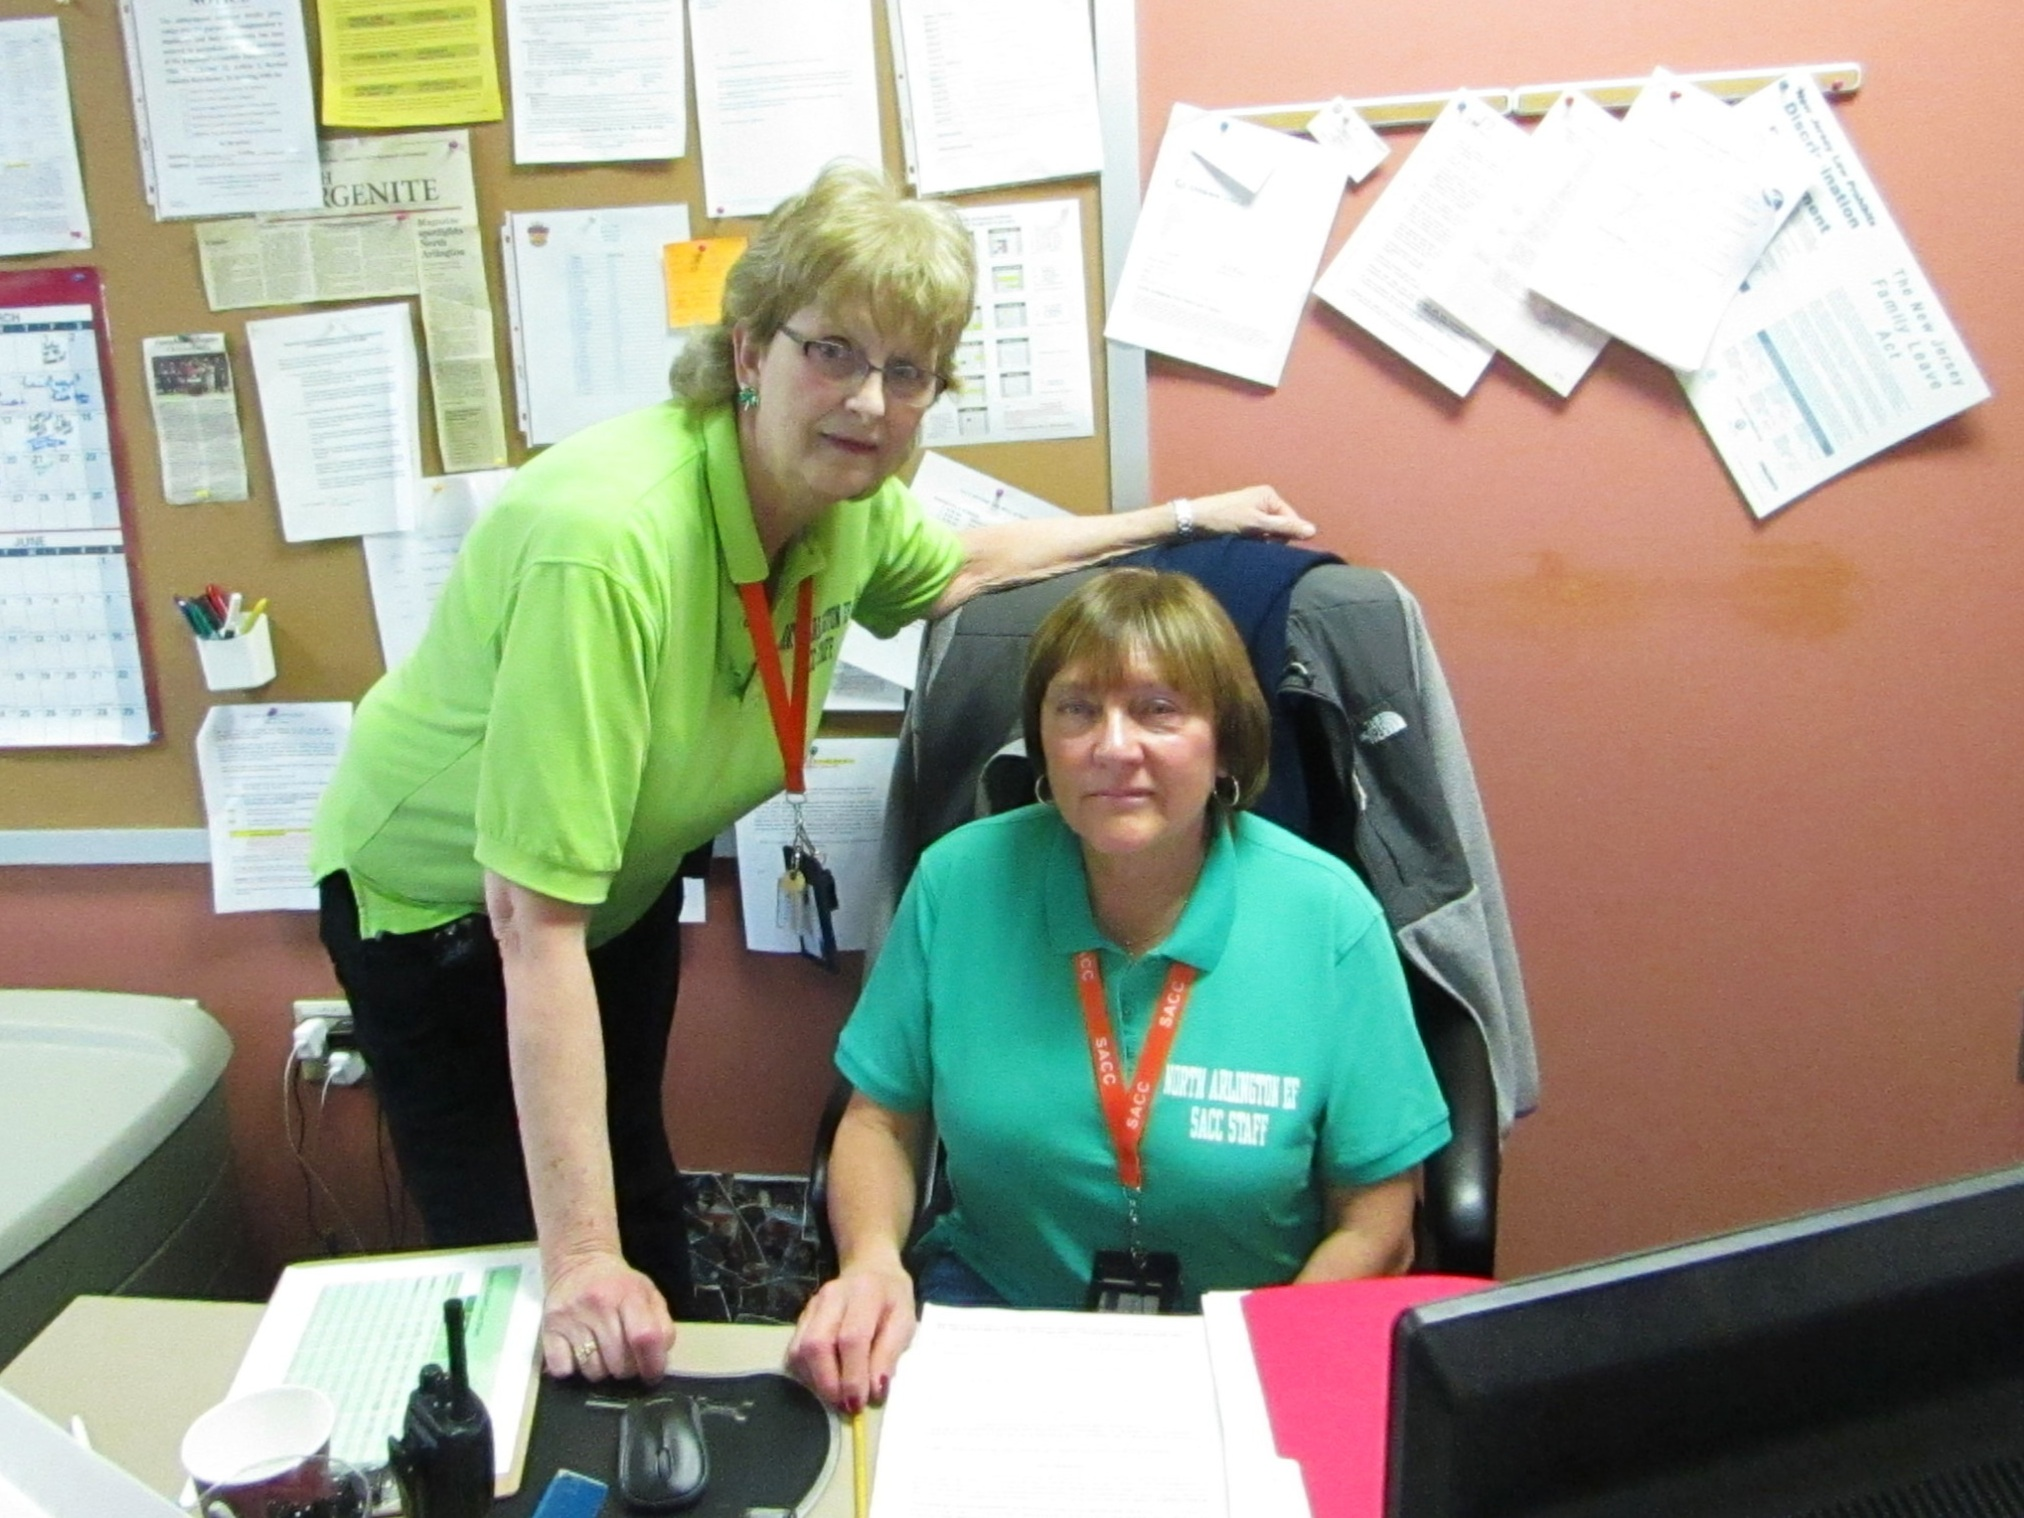 Site Director {left} and Program Director {right} are Certified Teachers with CPR and First Aid Certifications.